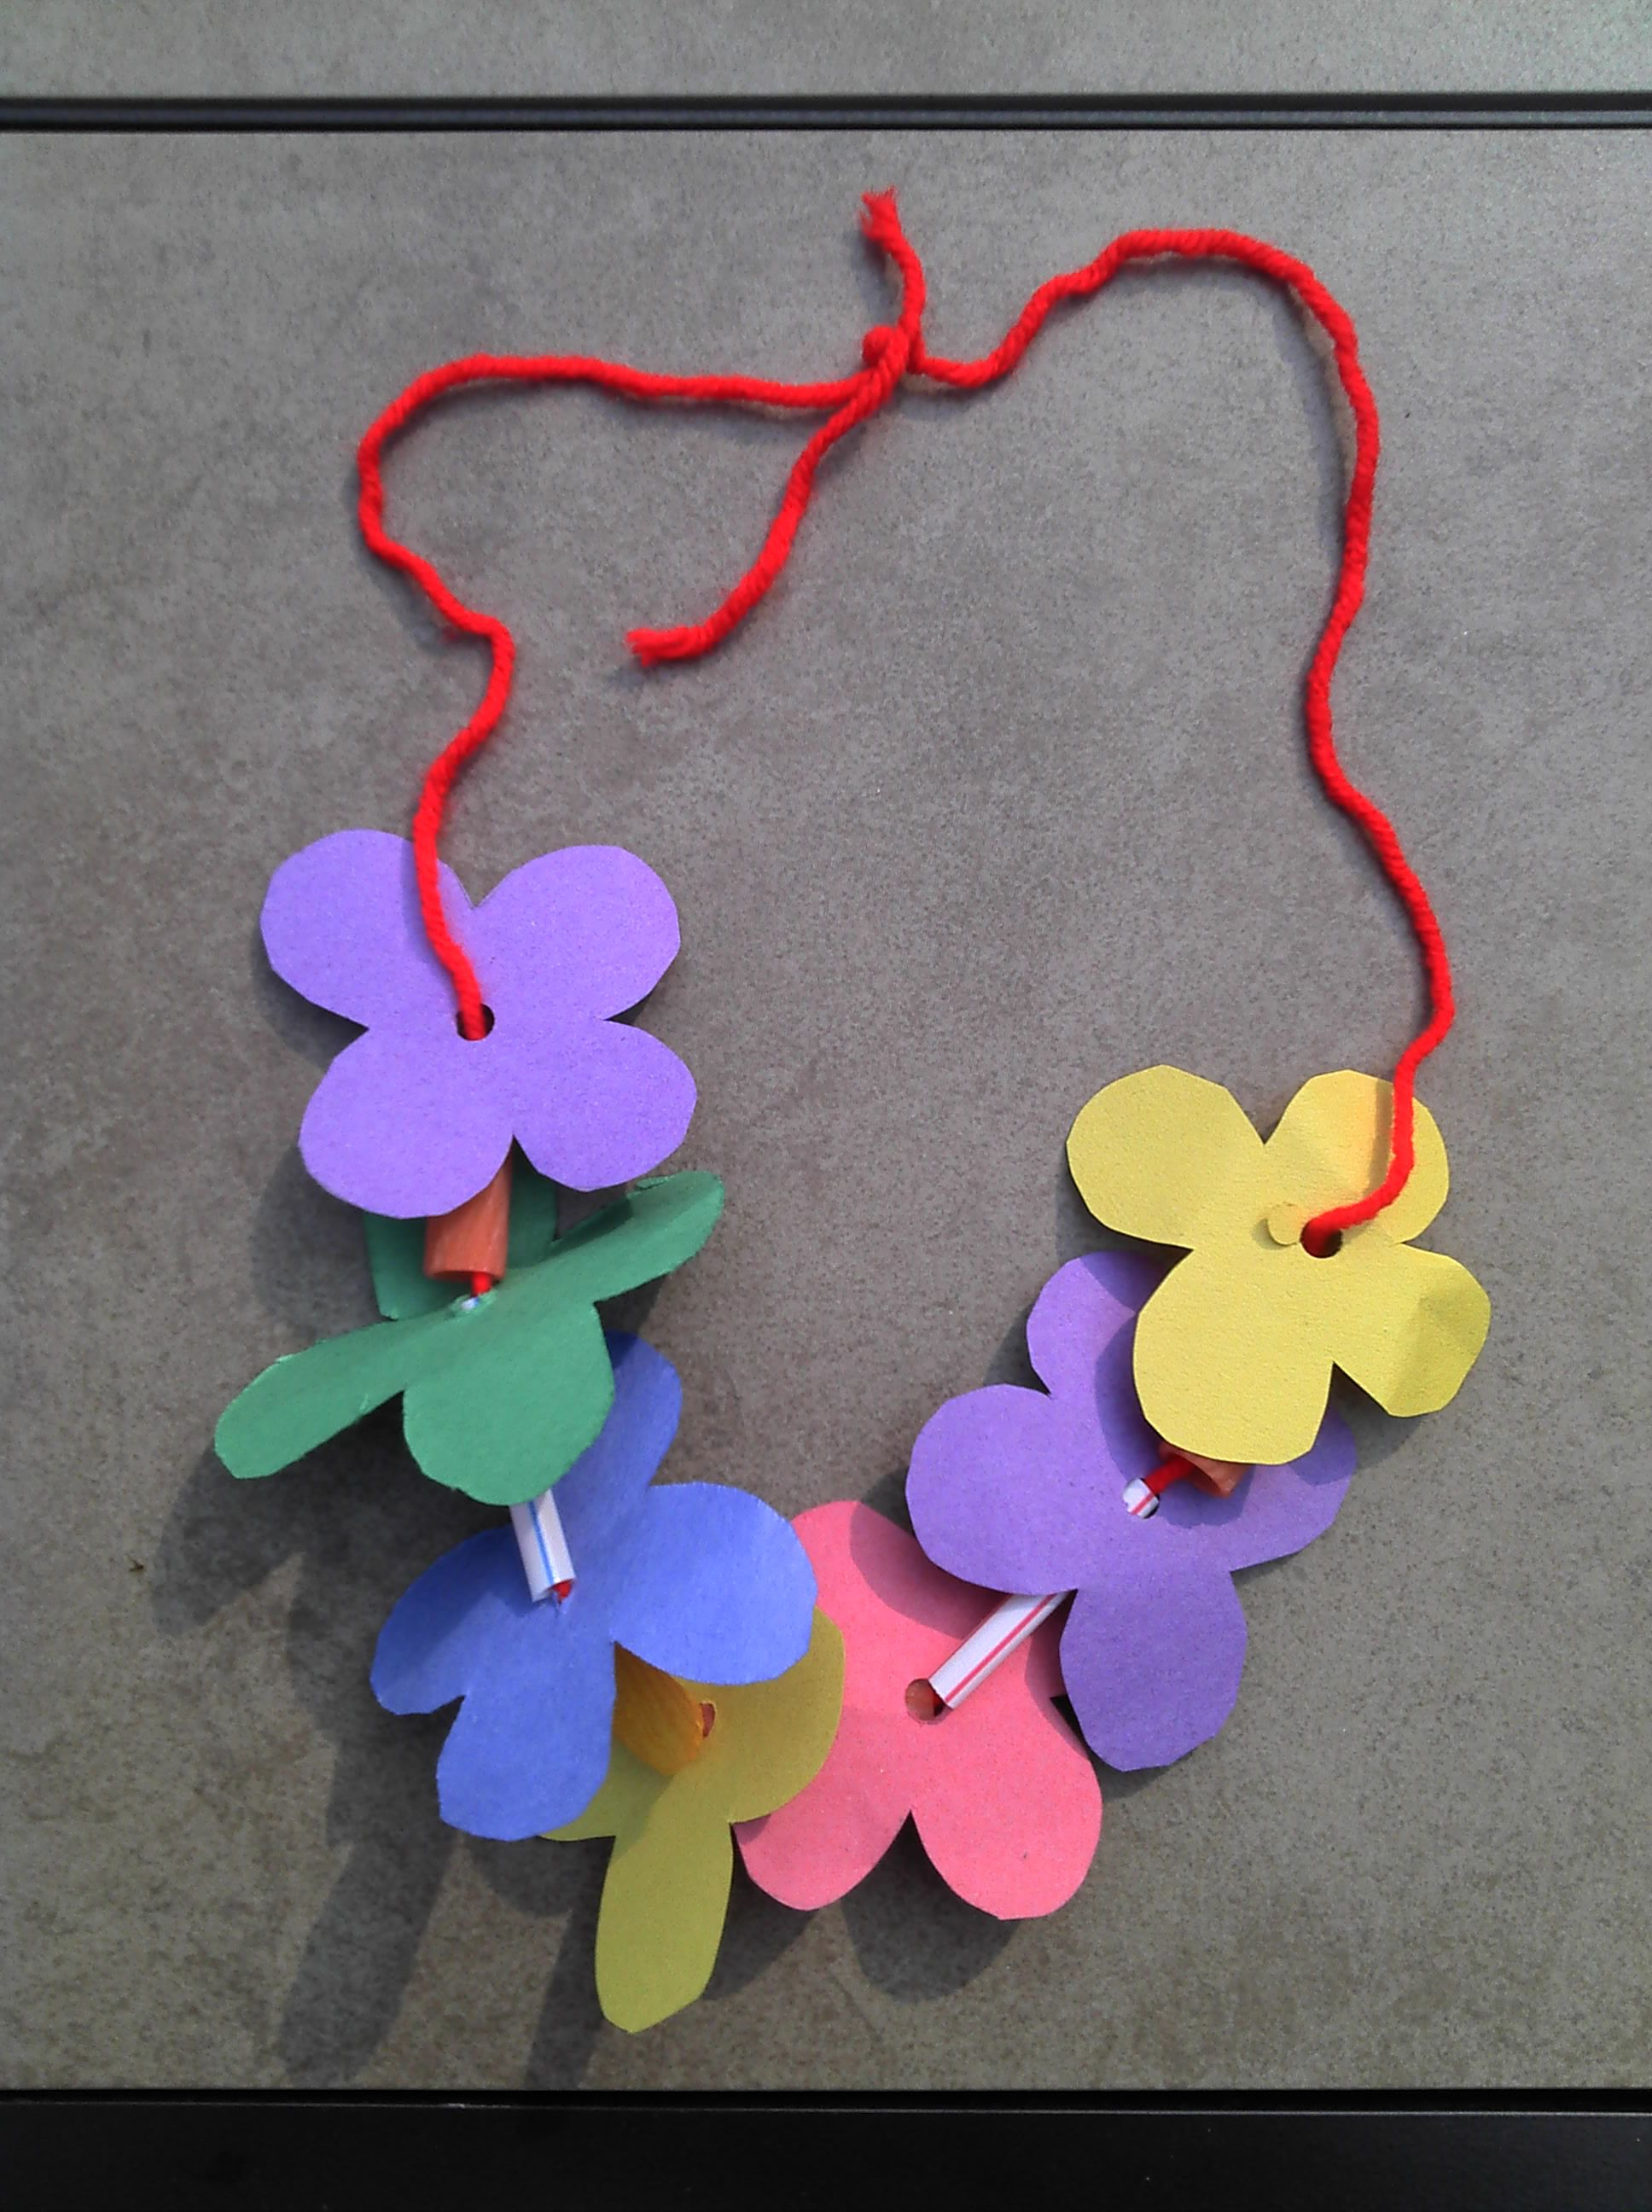 Lei Can Be Made With Construction Paper Yarn Amp Solid Colored Straws As Spacers